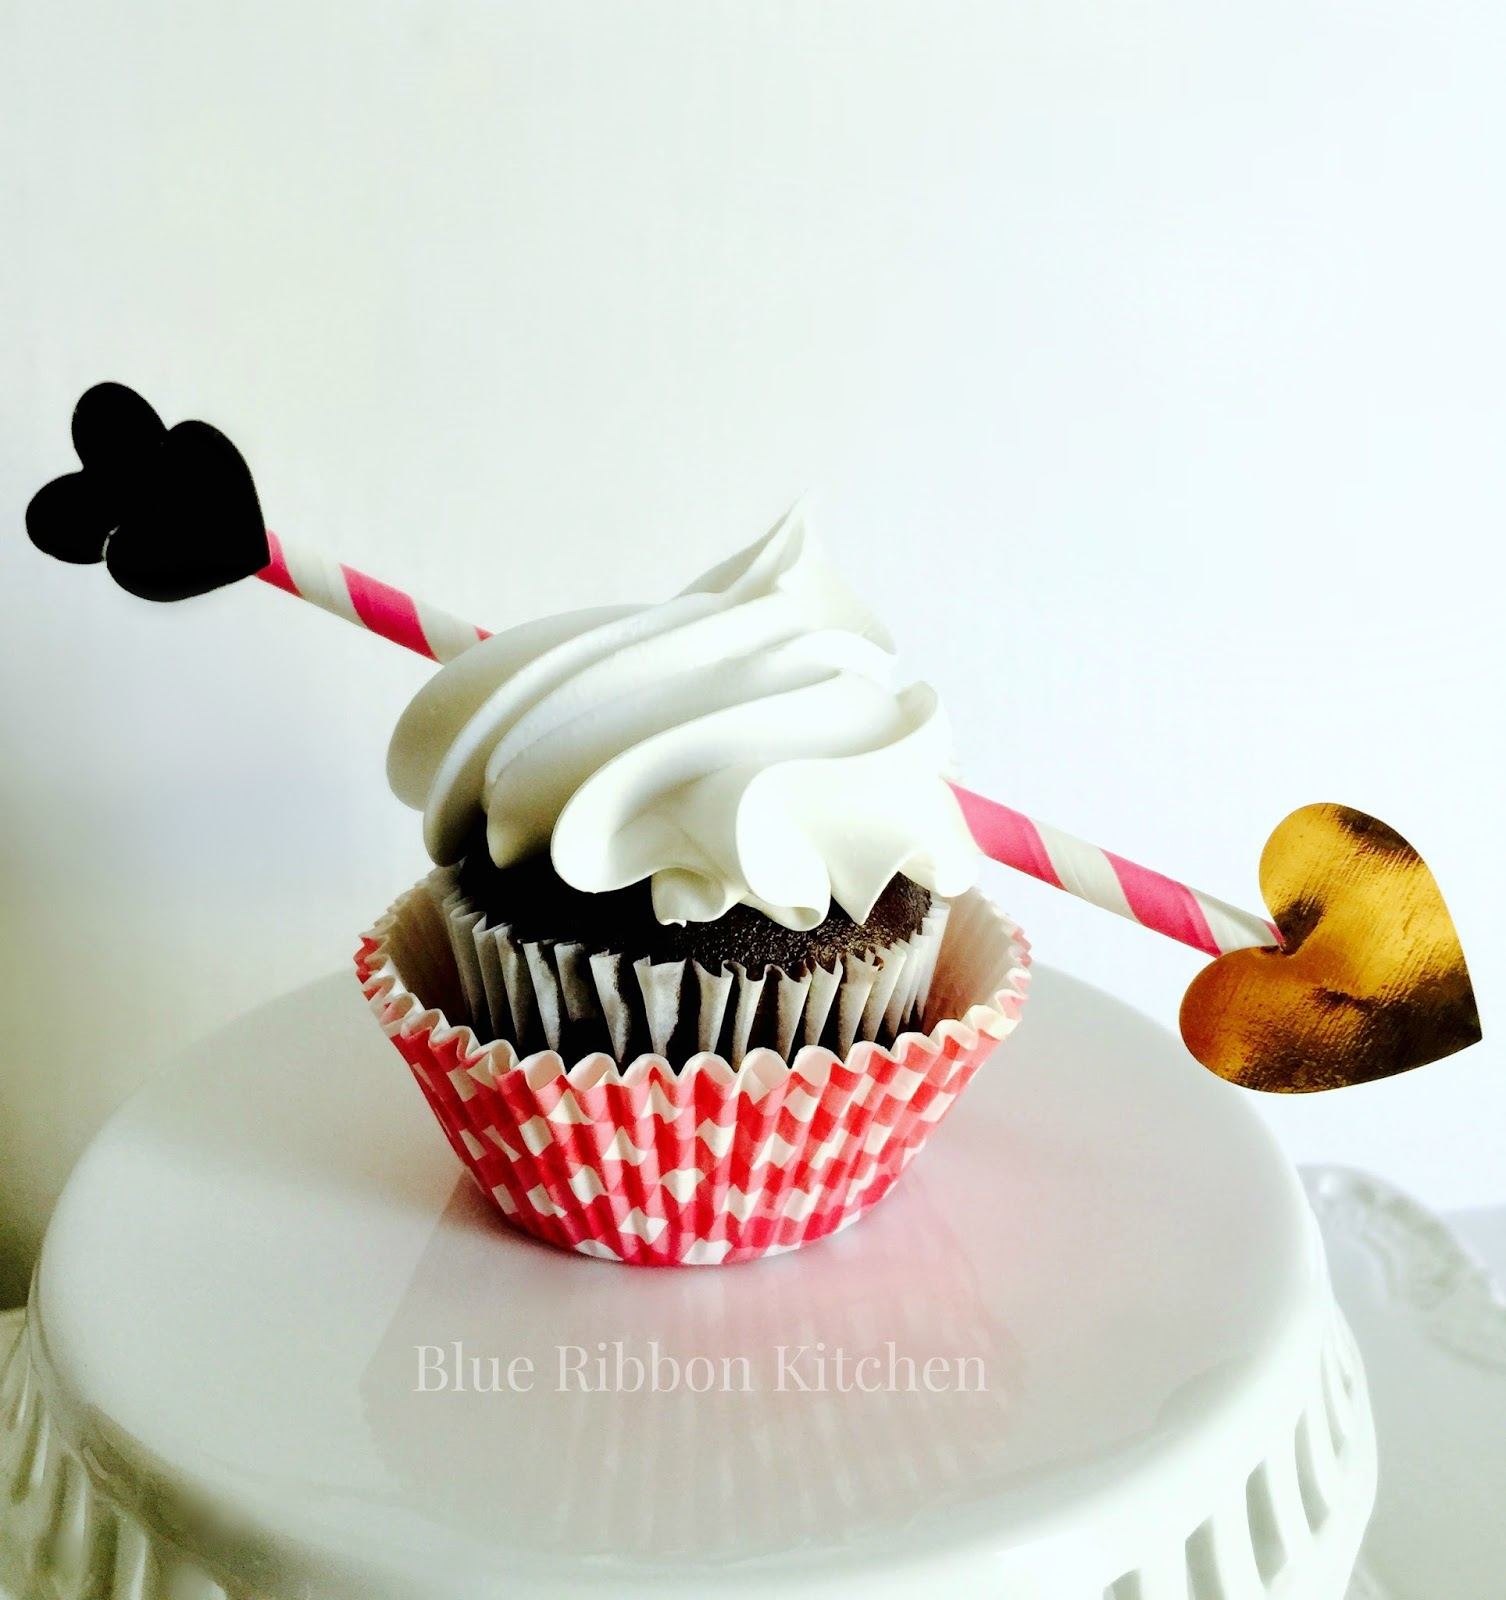 Blue Ribbon Kitchen: Cupid's Arrow Valentine Cupcakes